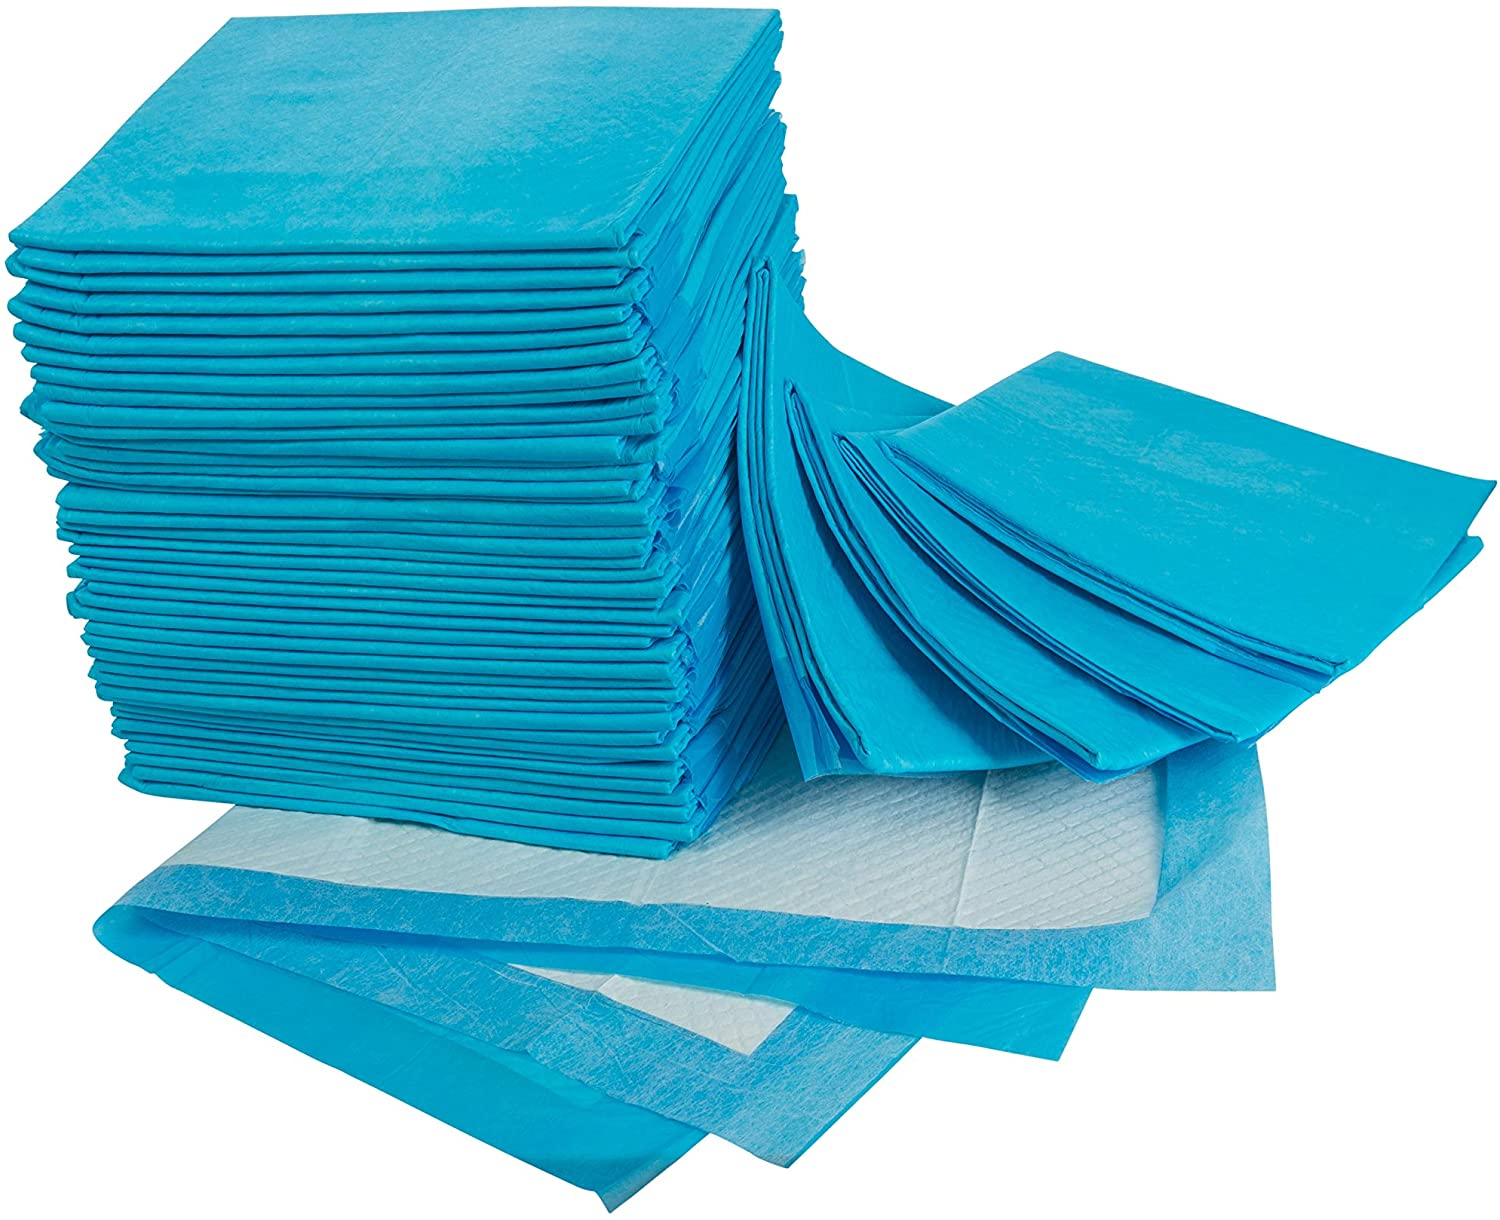 Disposable Underpads 23x36 Inches – Ultra Absorbent 60g Bulk Bed Pads For Adults, Pets, Furniture – Thick Incontinence Bedding & Furniture Protectors – 50 Count